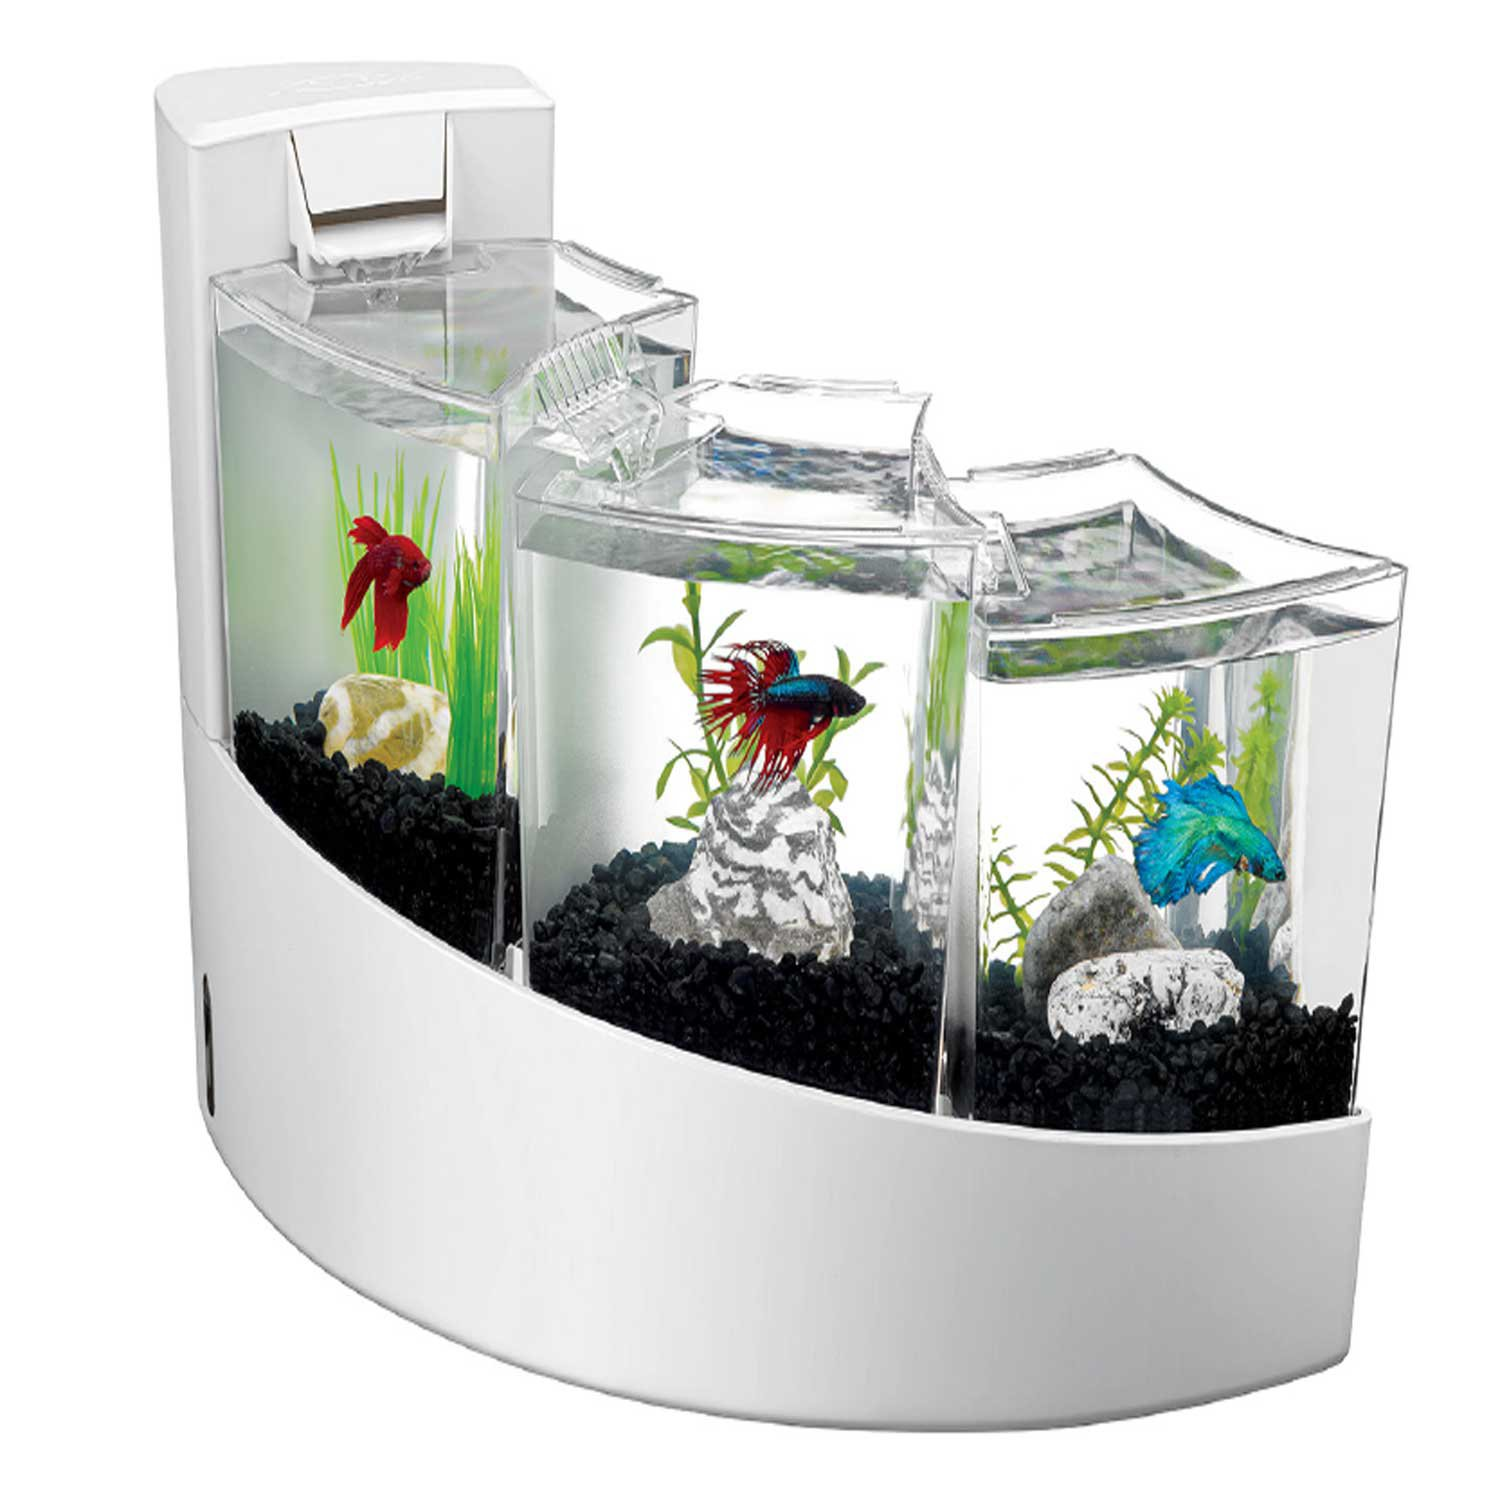 Décoration Aquarium Pour Combattant Aqueon Betta Falls Aquarium Kit In White Petco